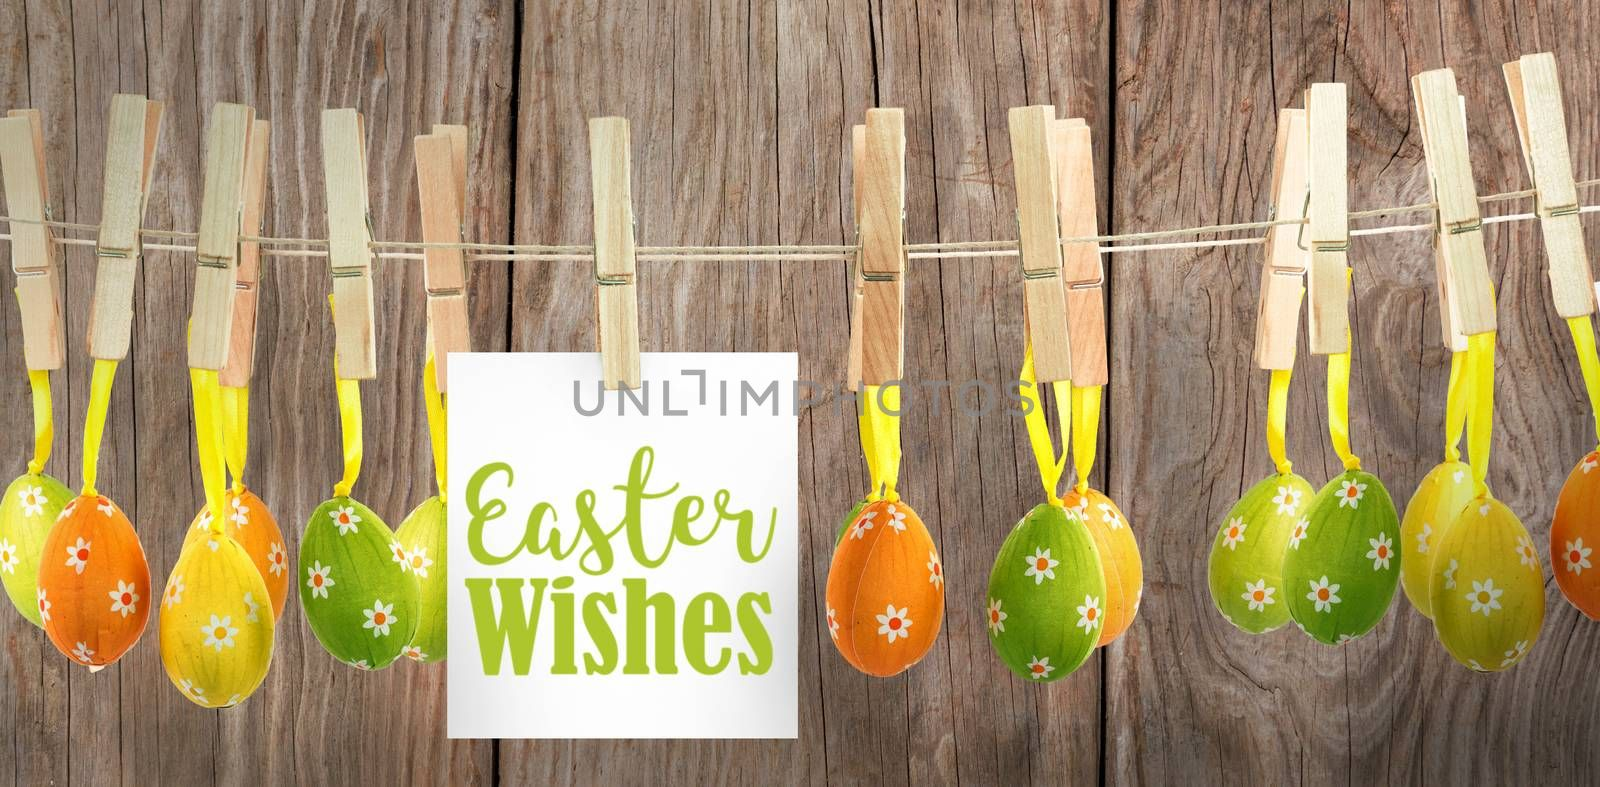 Easter greeting against close-up of wooden texture